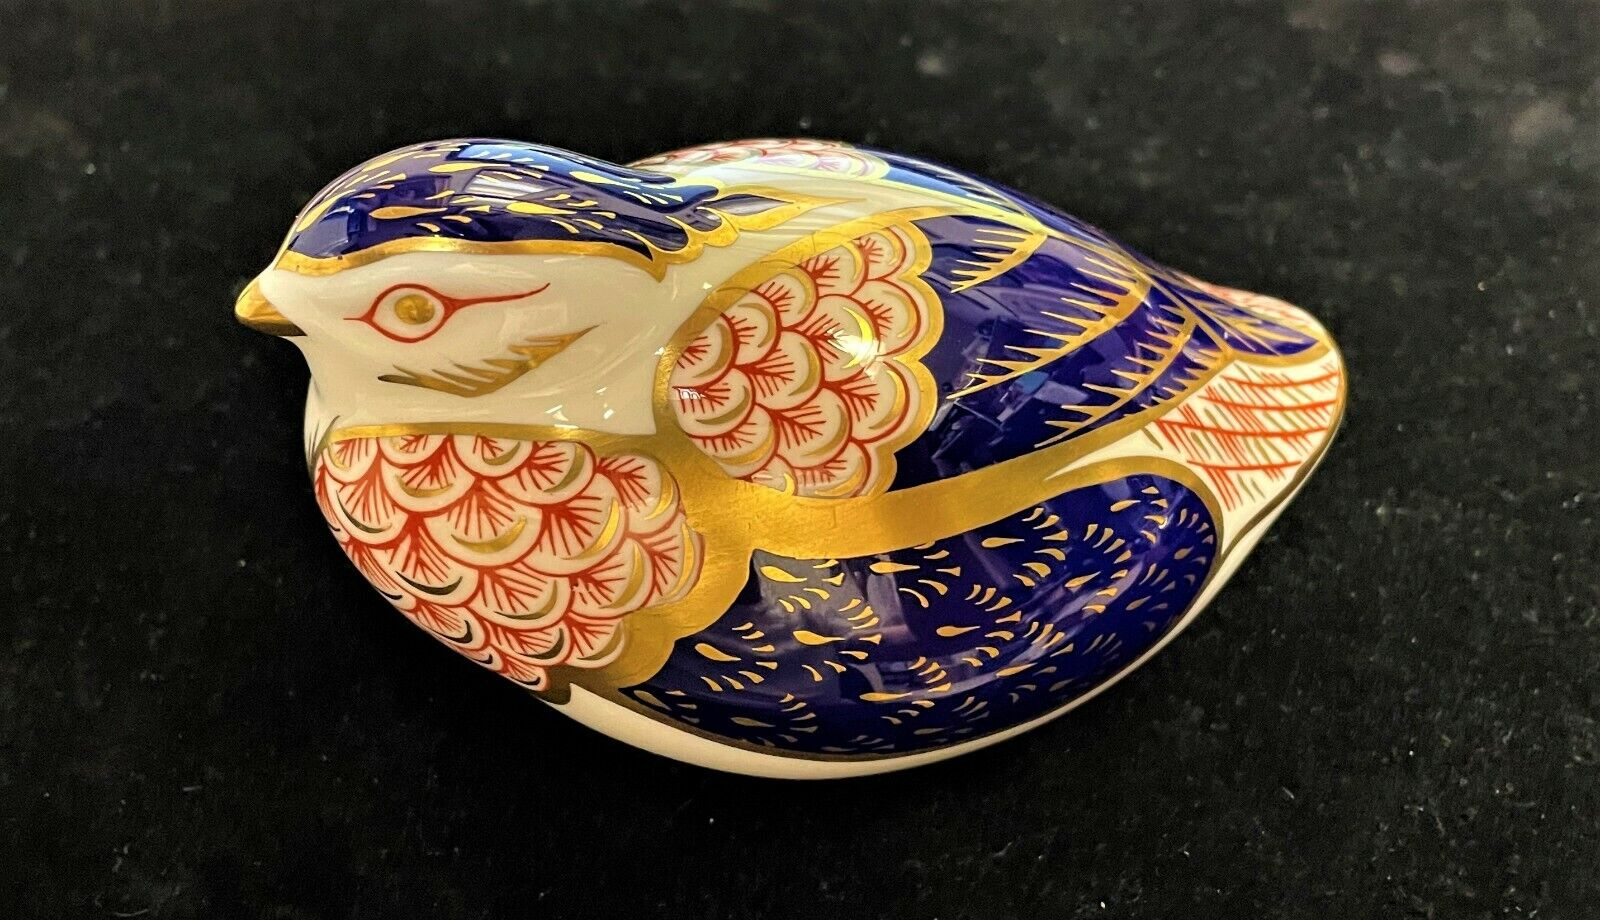 Royal Crown Derby Porcelain Desk Paper Weight Early Imari Quail Gold Stopper - $29.99